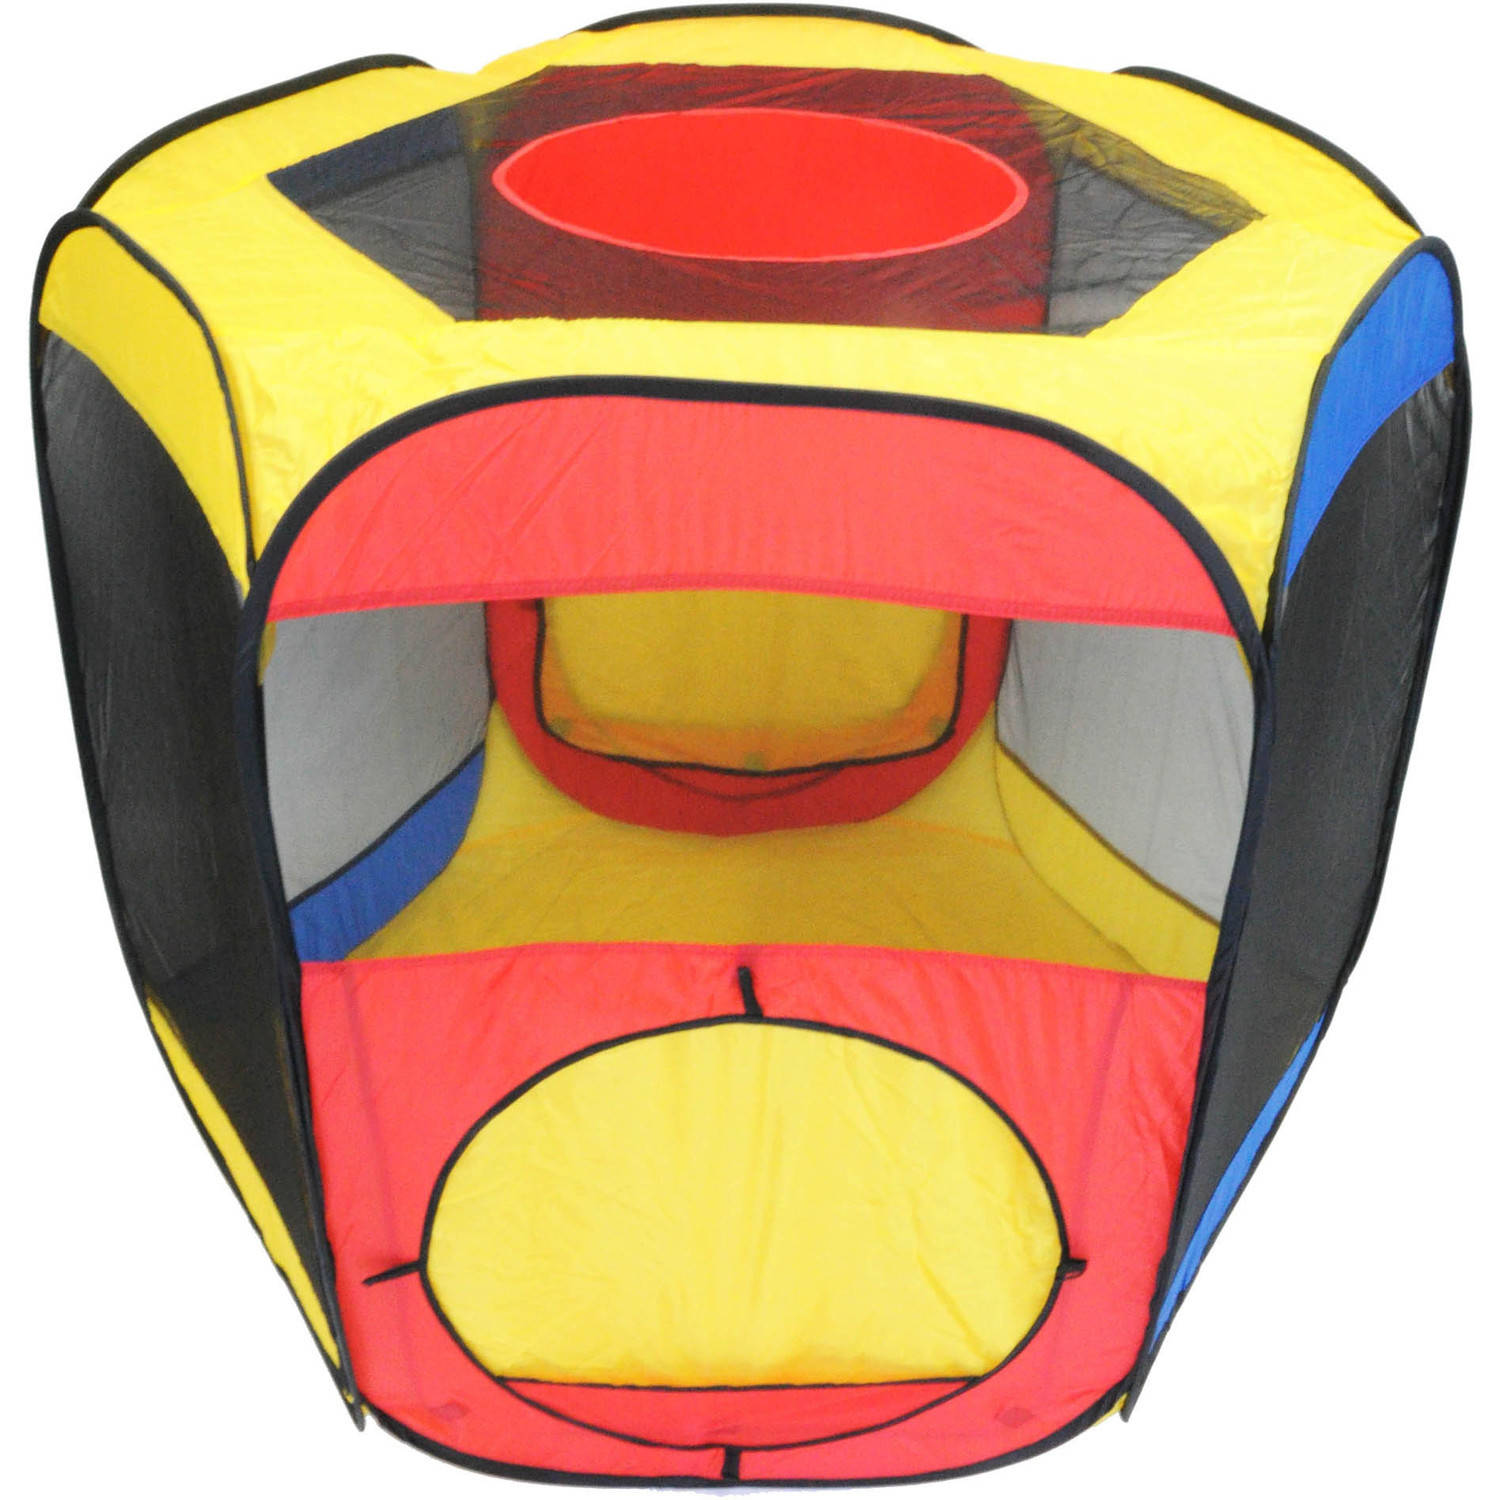 Six-Sided Hexagon Twist Play Tent with Ball Stopper and Safety Meshing for Child Play Visibility